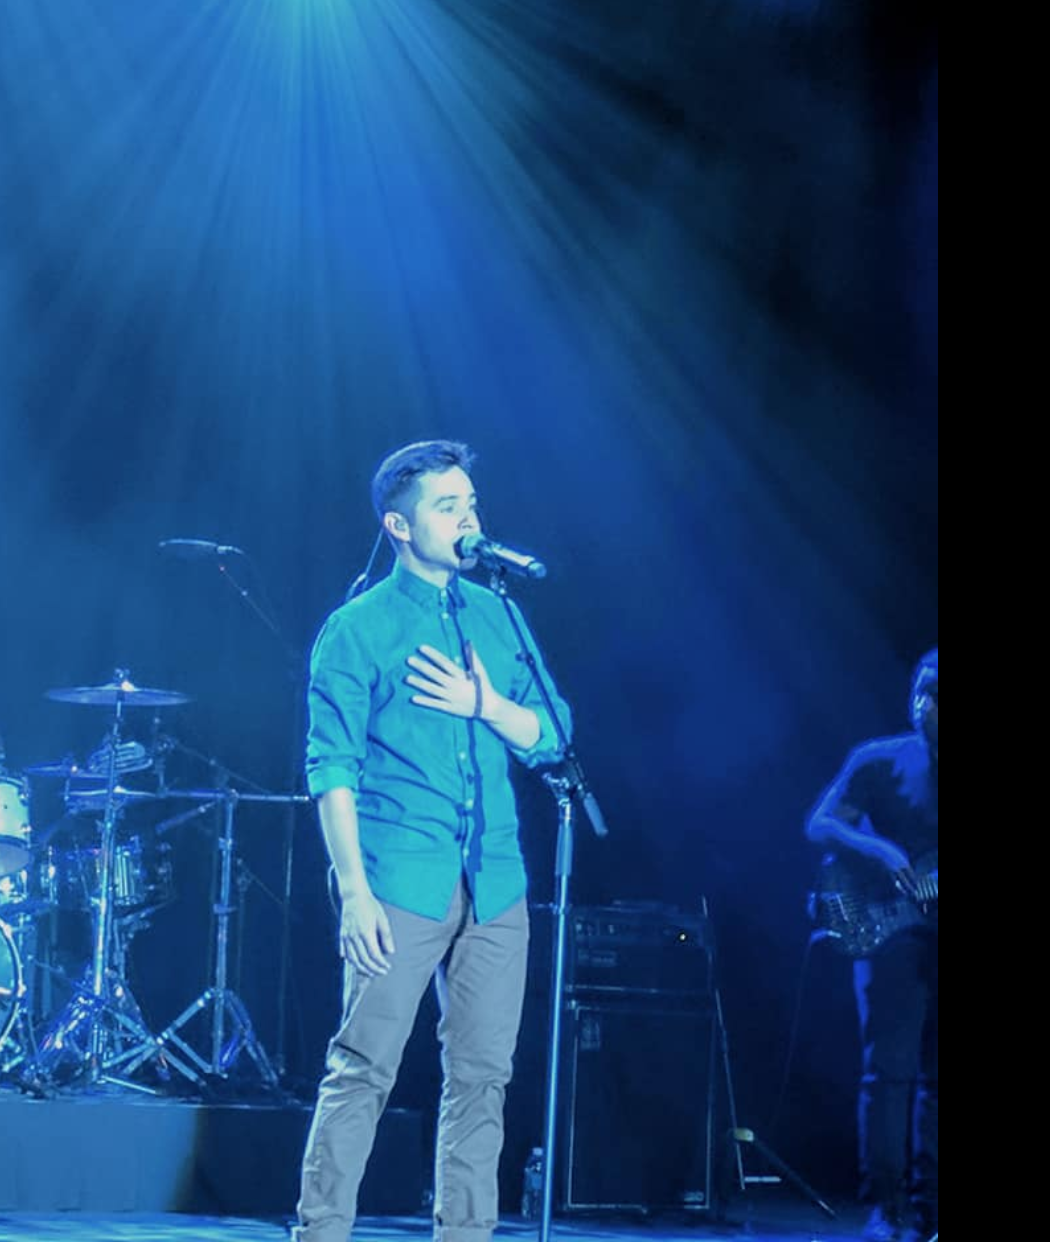 DAvid Archuleta credit Jeanie Thier Ashby on fb